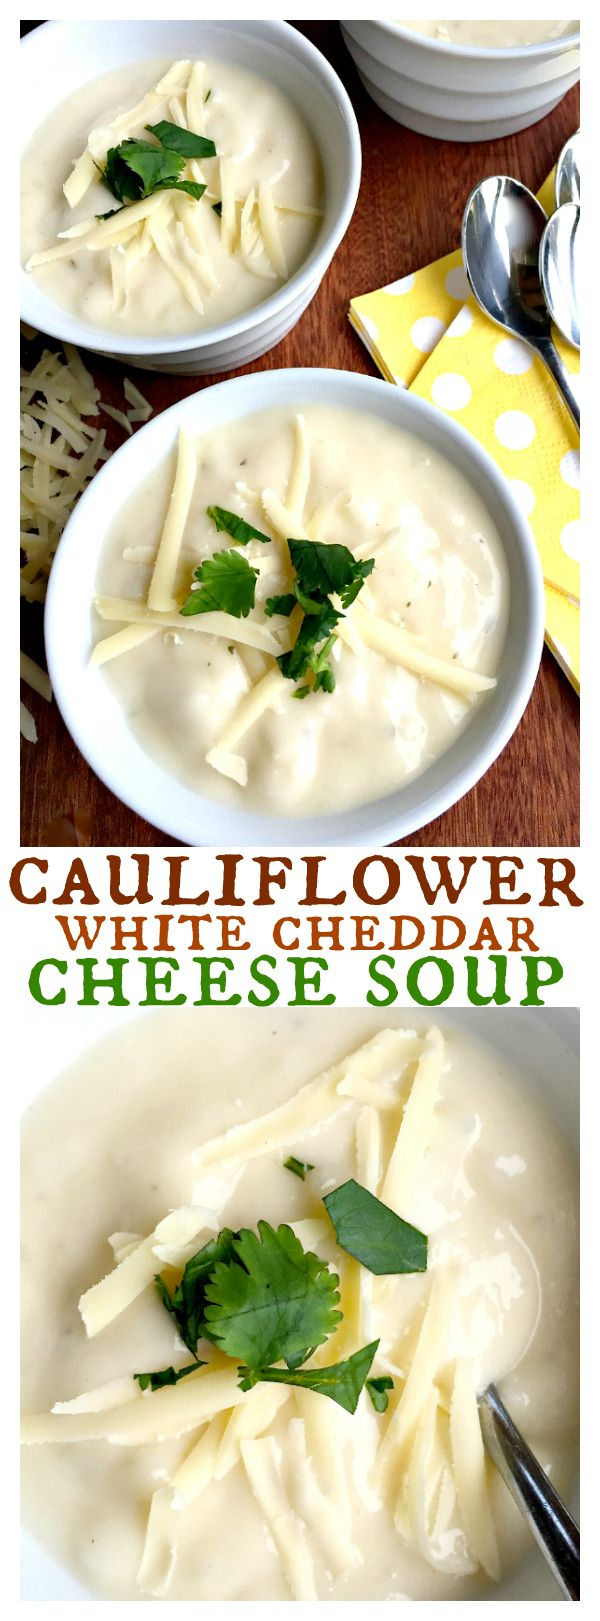 Cauliflower Gastric Sleeve Recipes Stage 2 Besto Blog Source Theworldaccordingtoeggface Pureed Foods For Post Weight Loss